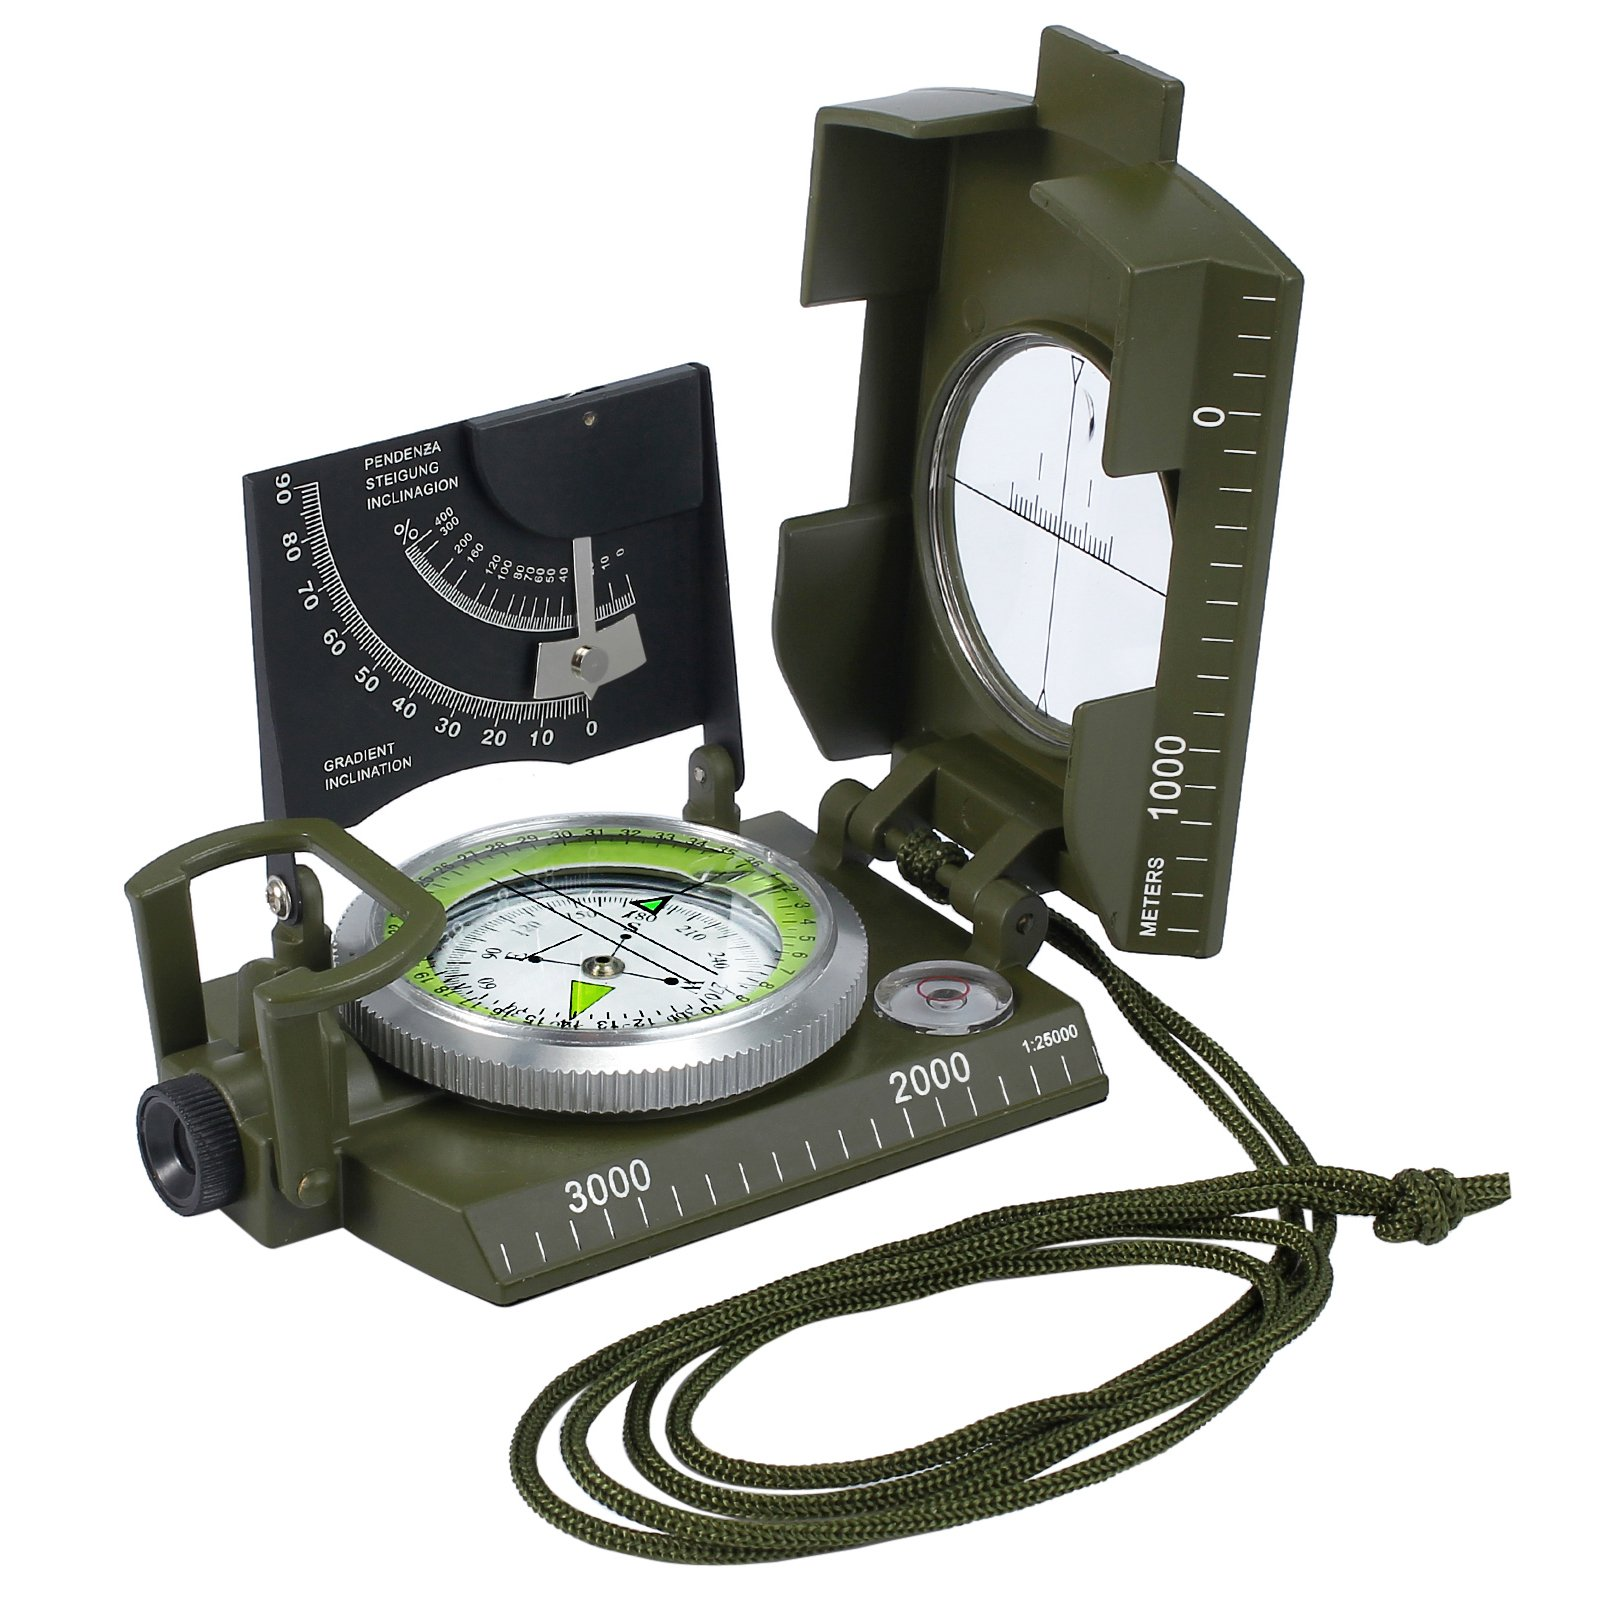 Kinstecks Professional Compass Clinometer Military Army Metal Sighting Compass with Clinometer Carry Bag for Hiking Hunting Camping Geology and Other Outdoor Activities